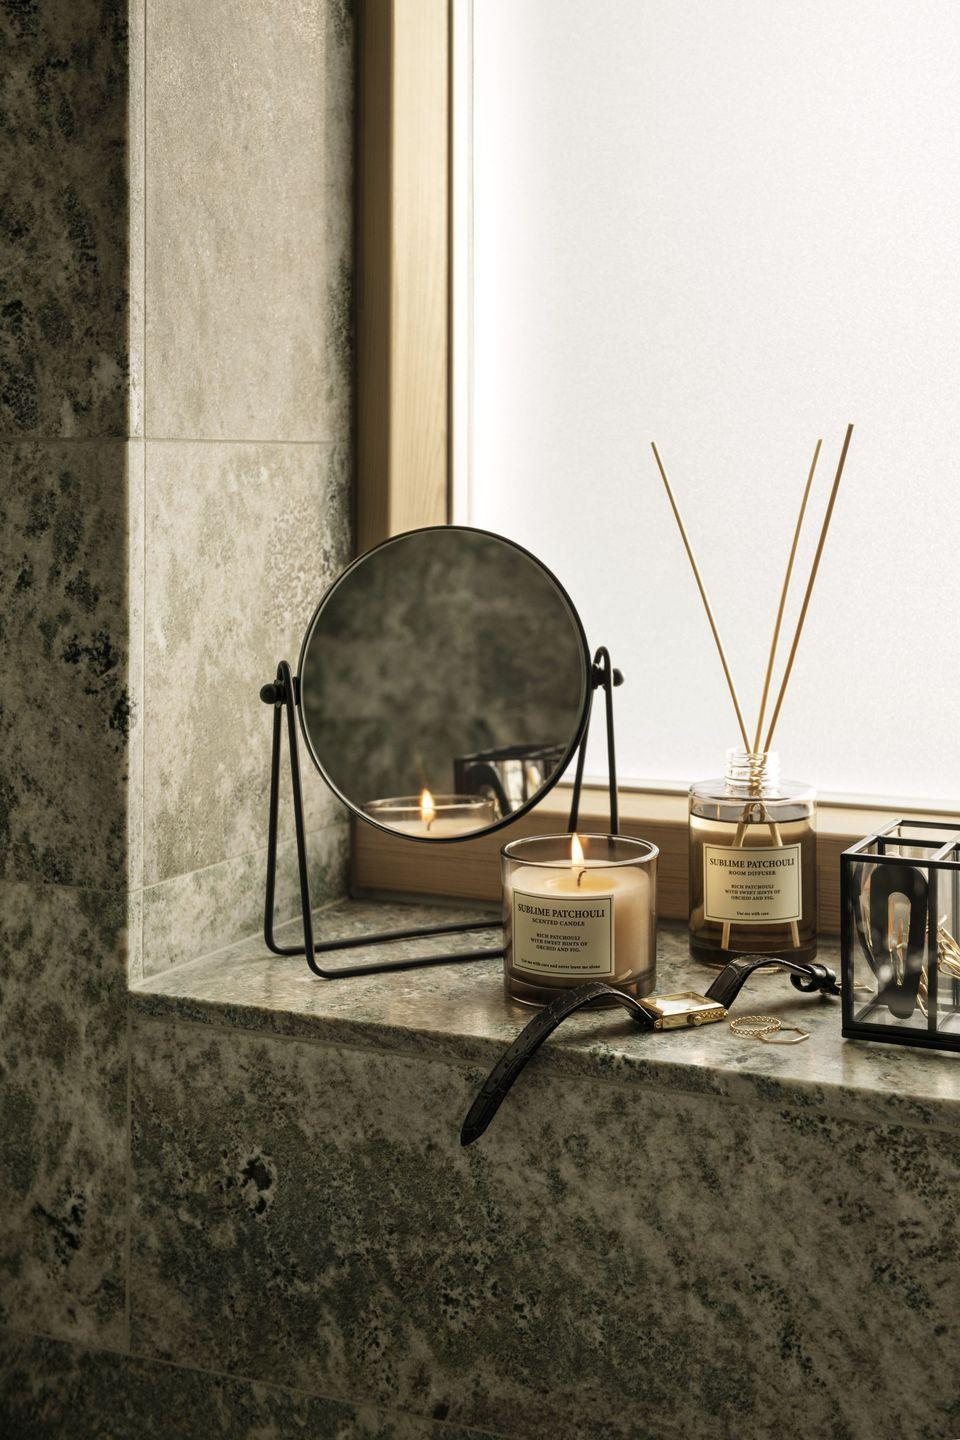 """<p>Add candles and diffusers for a spa like feel to elapse in the fragrance. The sense of smell is closely linked to memories and emotions and adding a subtle scent to every room can make your space feel even more welcoming. </p><p><a class=""""link rapid-noclick-resp"""" href=""""https://go.redirectingat.com?id=127X1599956&url=https%3A%2F%2Fwww2.hm.com%2Fen_gb%2Fsearch-results.html%3Fq%3Dcandles&sref=https%3A%2F%2Fwww.prima.co.uk%2Fhome-ideas%2Fhome-accessories-buys%2Fg37325647%2Fhandm-home-autumn-collection%2F"""" rel=""""nofollow noopener"""" target=""""_blank"""" data-ylk=""""slk:Shop candles at H&M"""">Shop candles at H&M</a></p>"""